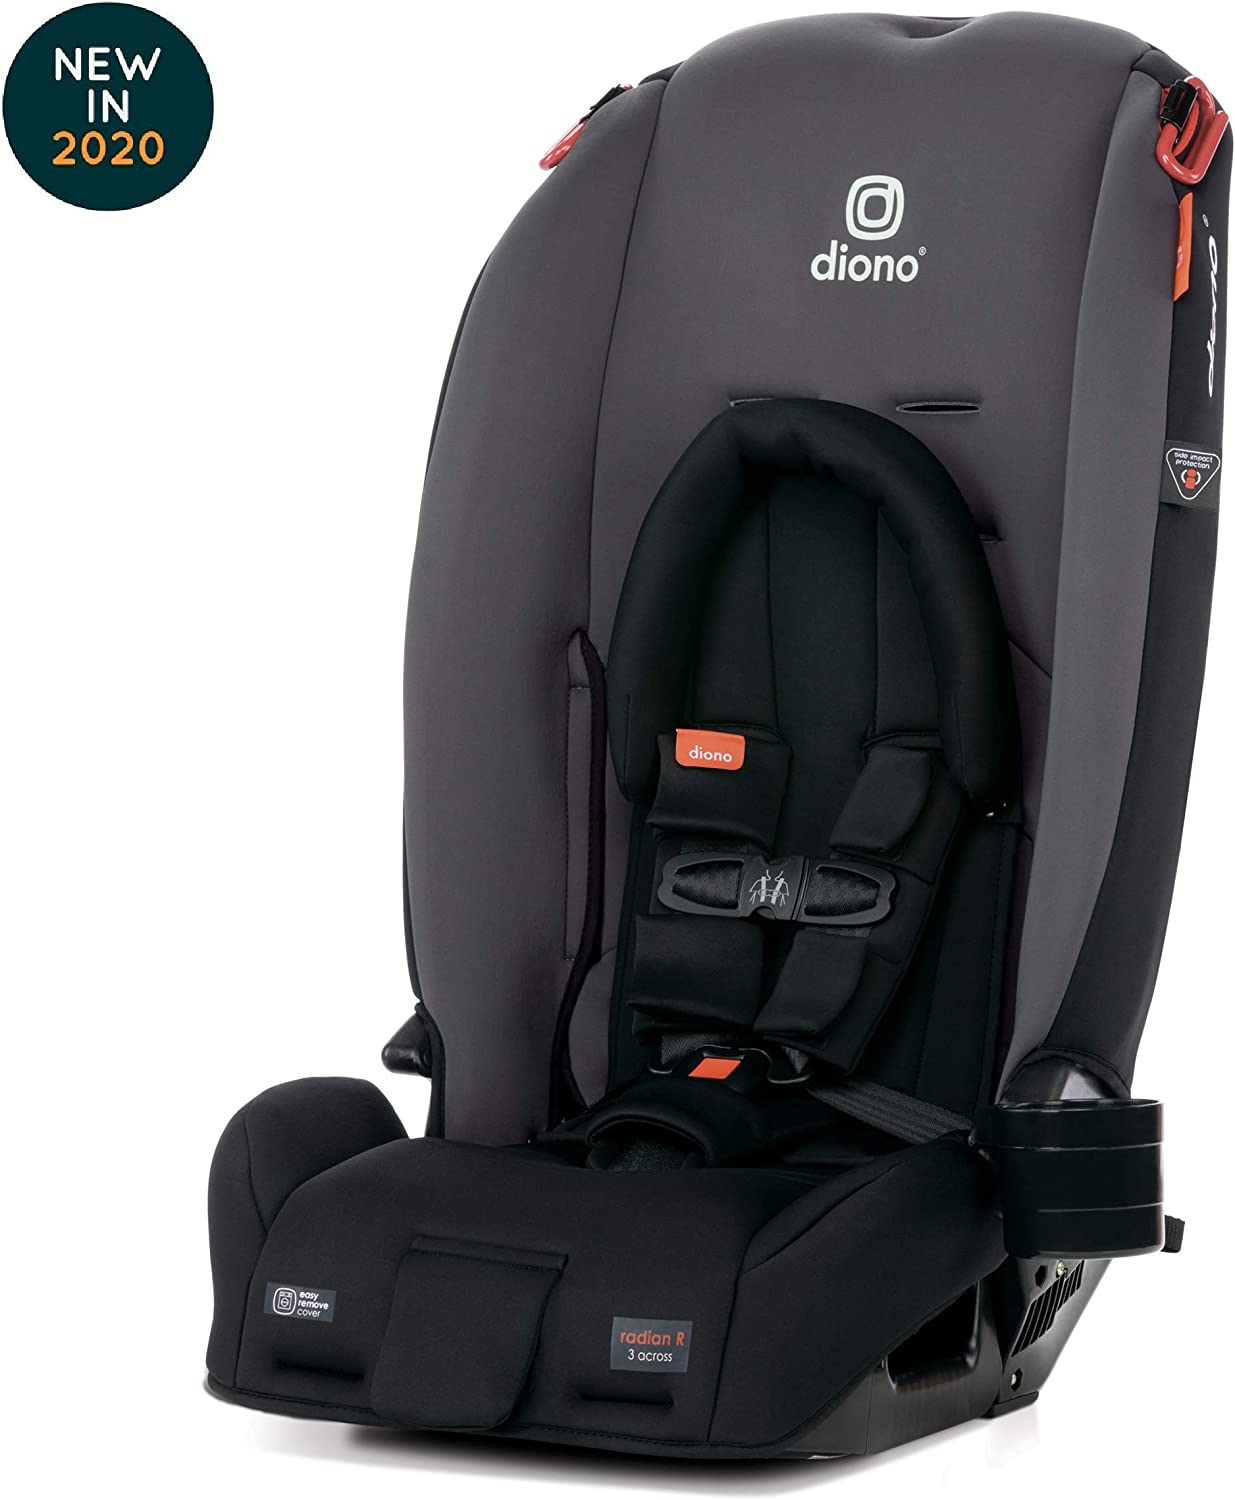 Black Jet Diono Radian 3RX Latch All-in-One Convertible Car Seat